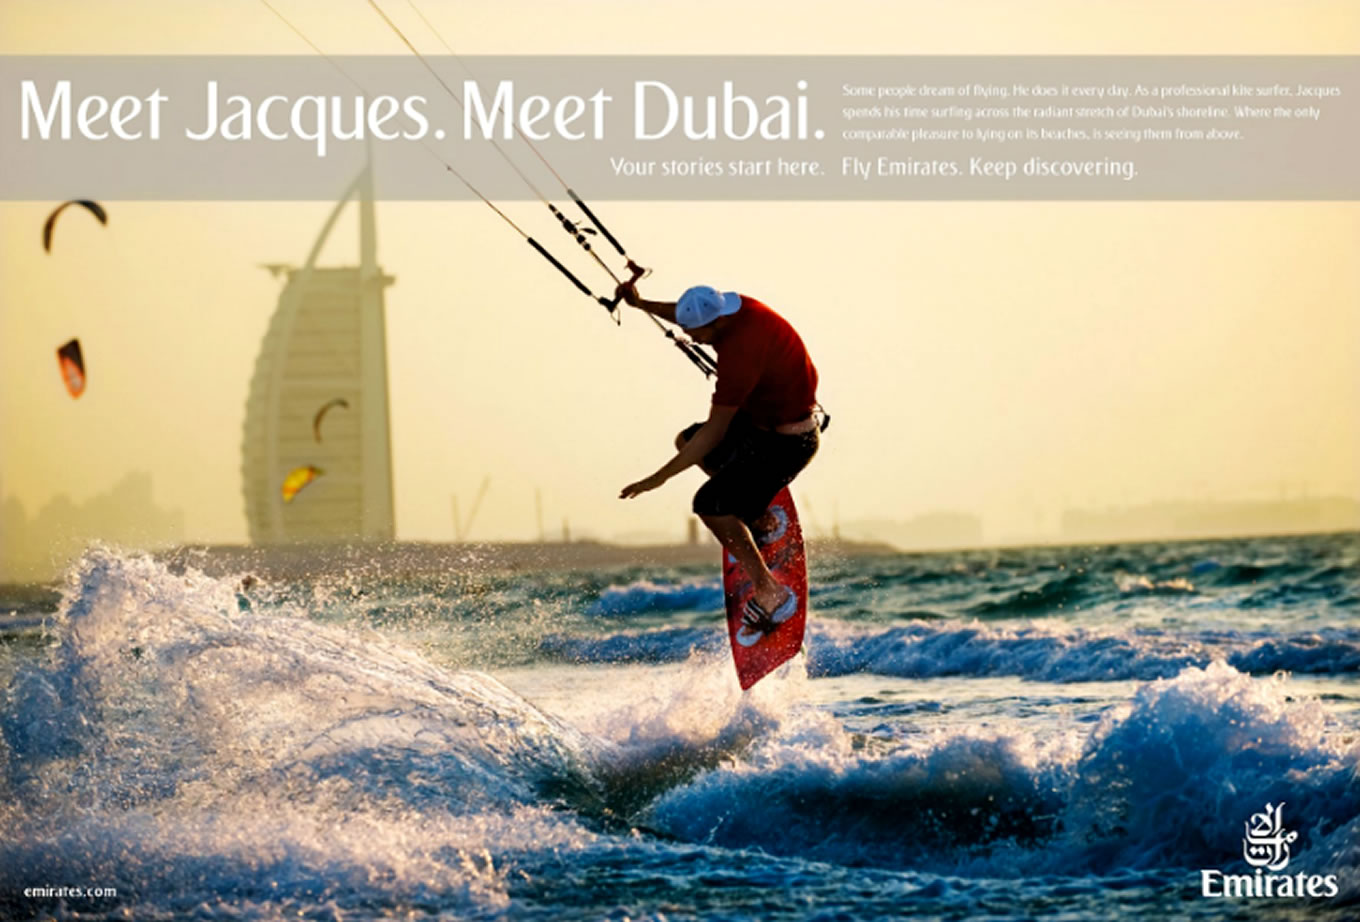 Meet Jacques, Meet Dubai Advertising Campaign by Emirates